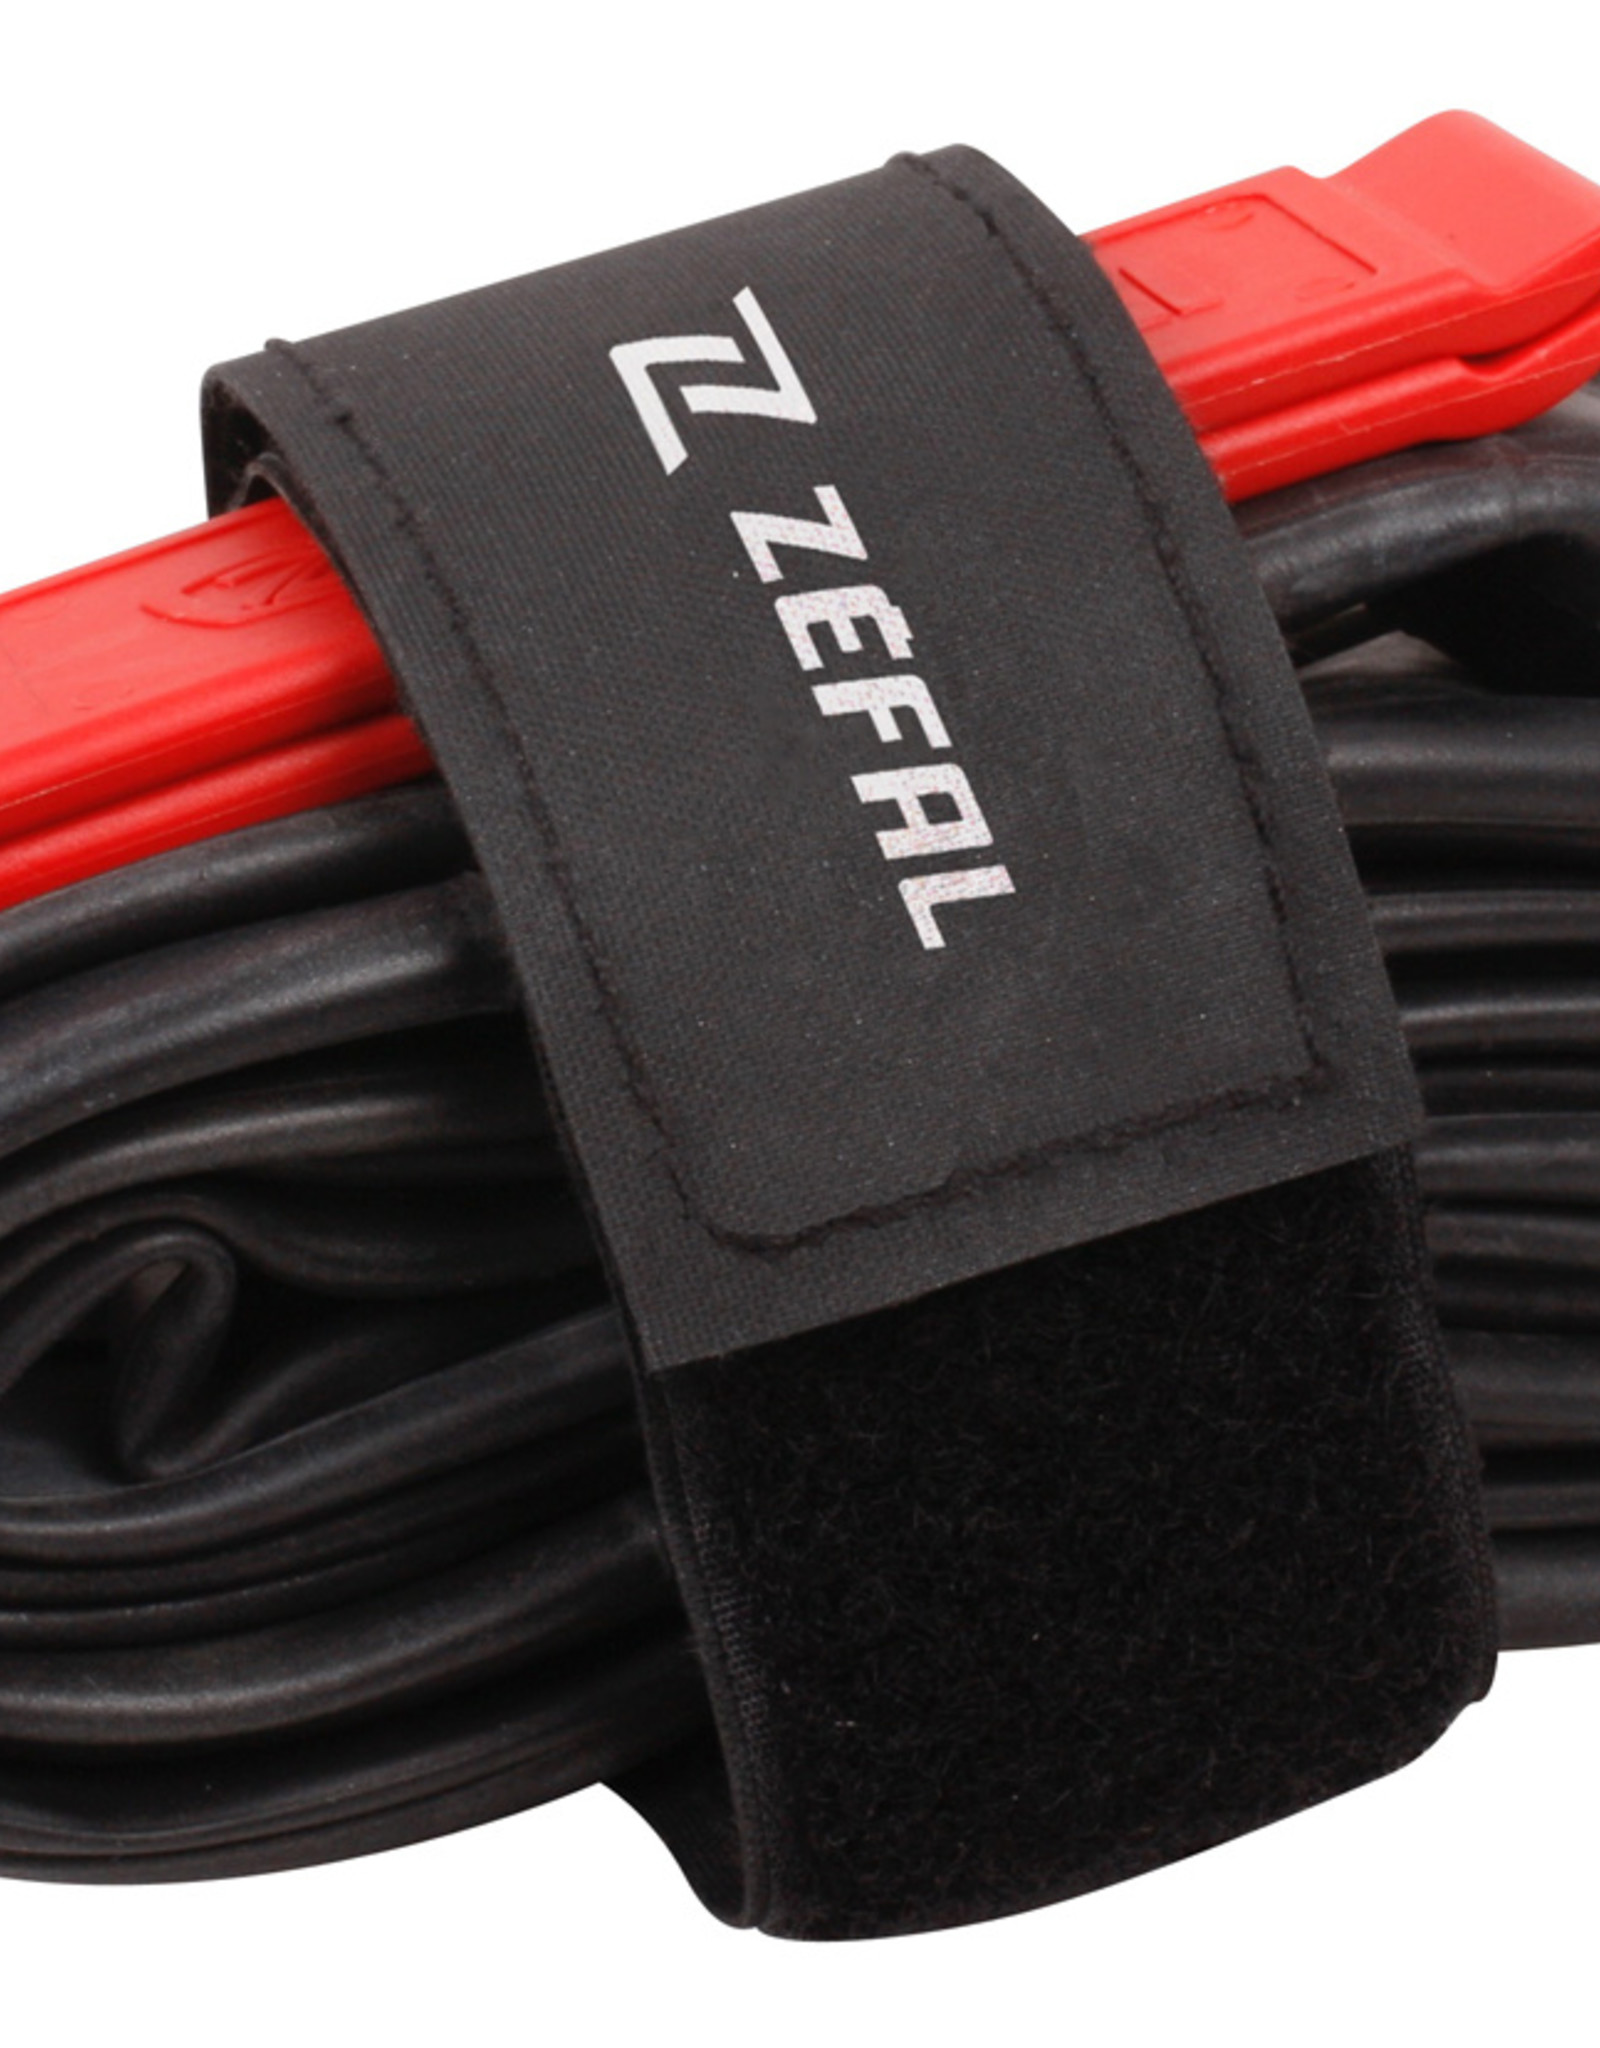 Zefal Universal Tube Strap Incl. 2 Levers